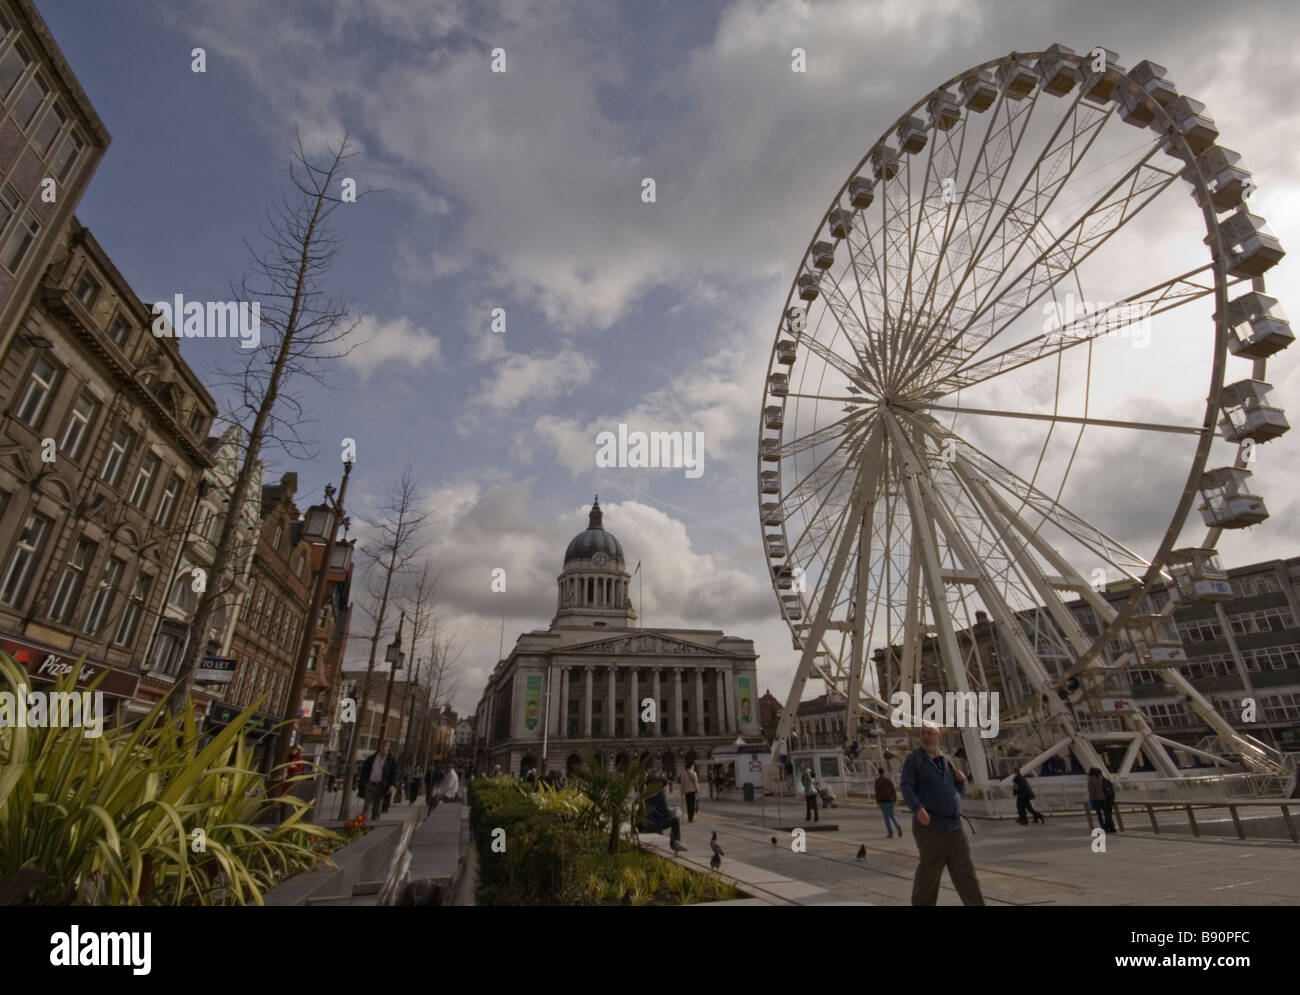 Nottingham Main Market Square and Big Wheel - Stock Image